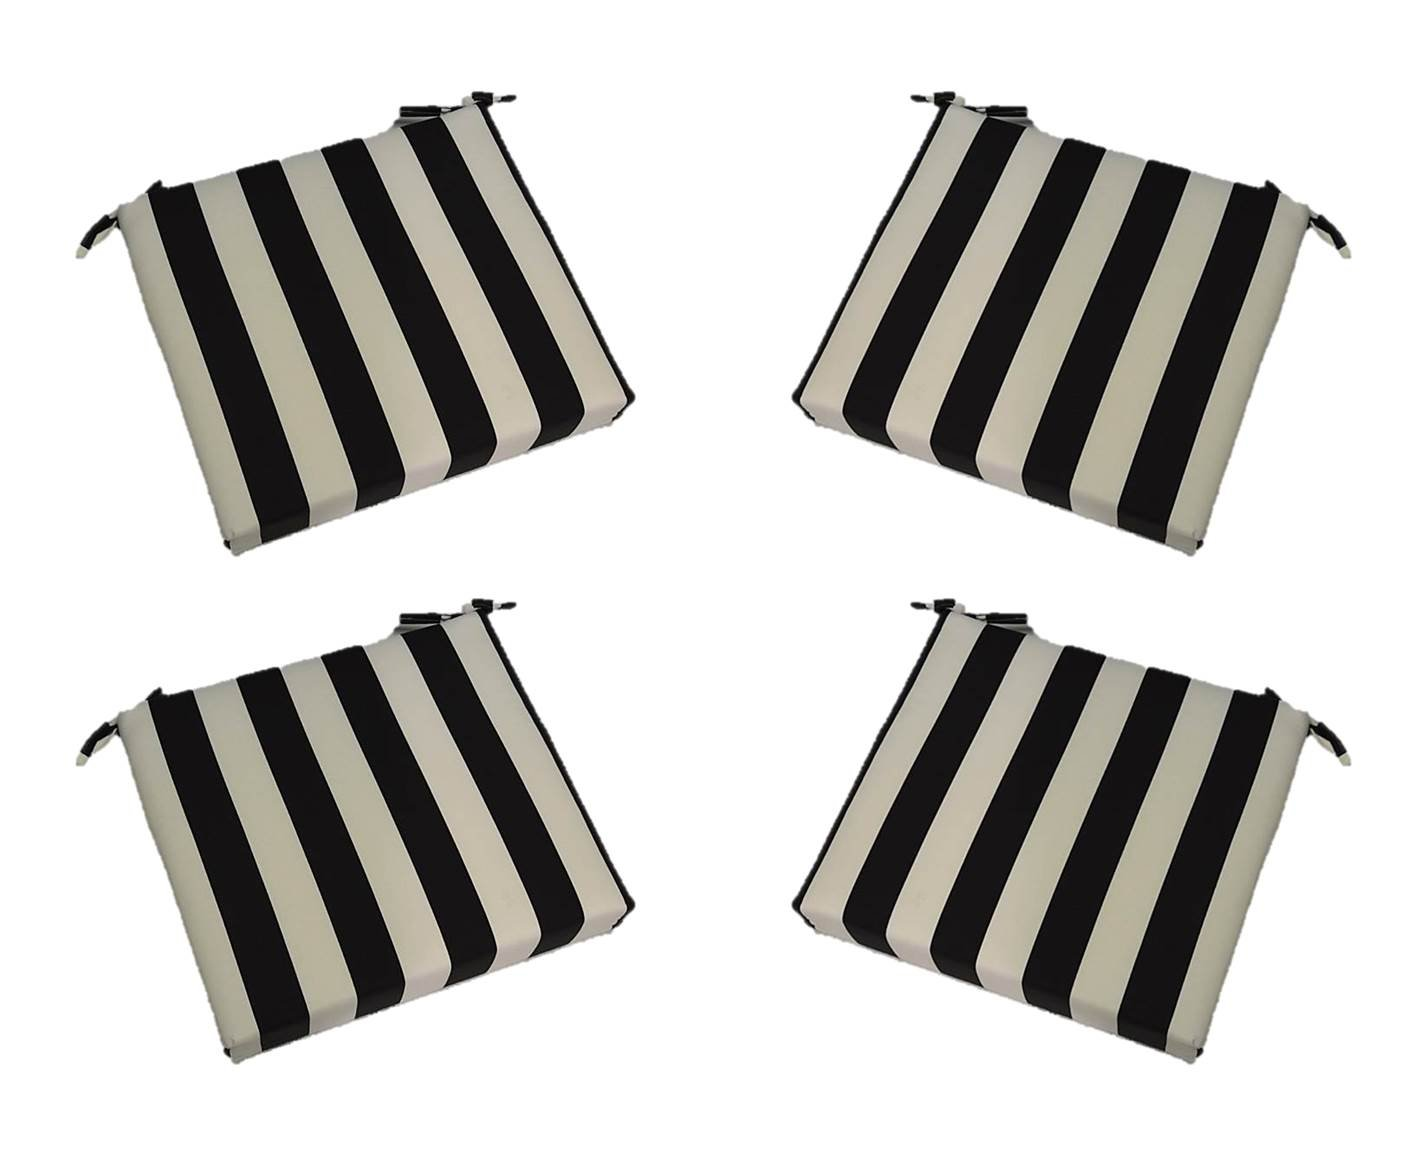 Set of 4 – Indoor Outdoor Black and White Stripe 17 X 17 Square Universal 3 Thick Foam Seat Cushions with Ties for Dining Patio Chairs